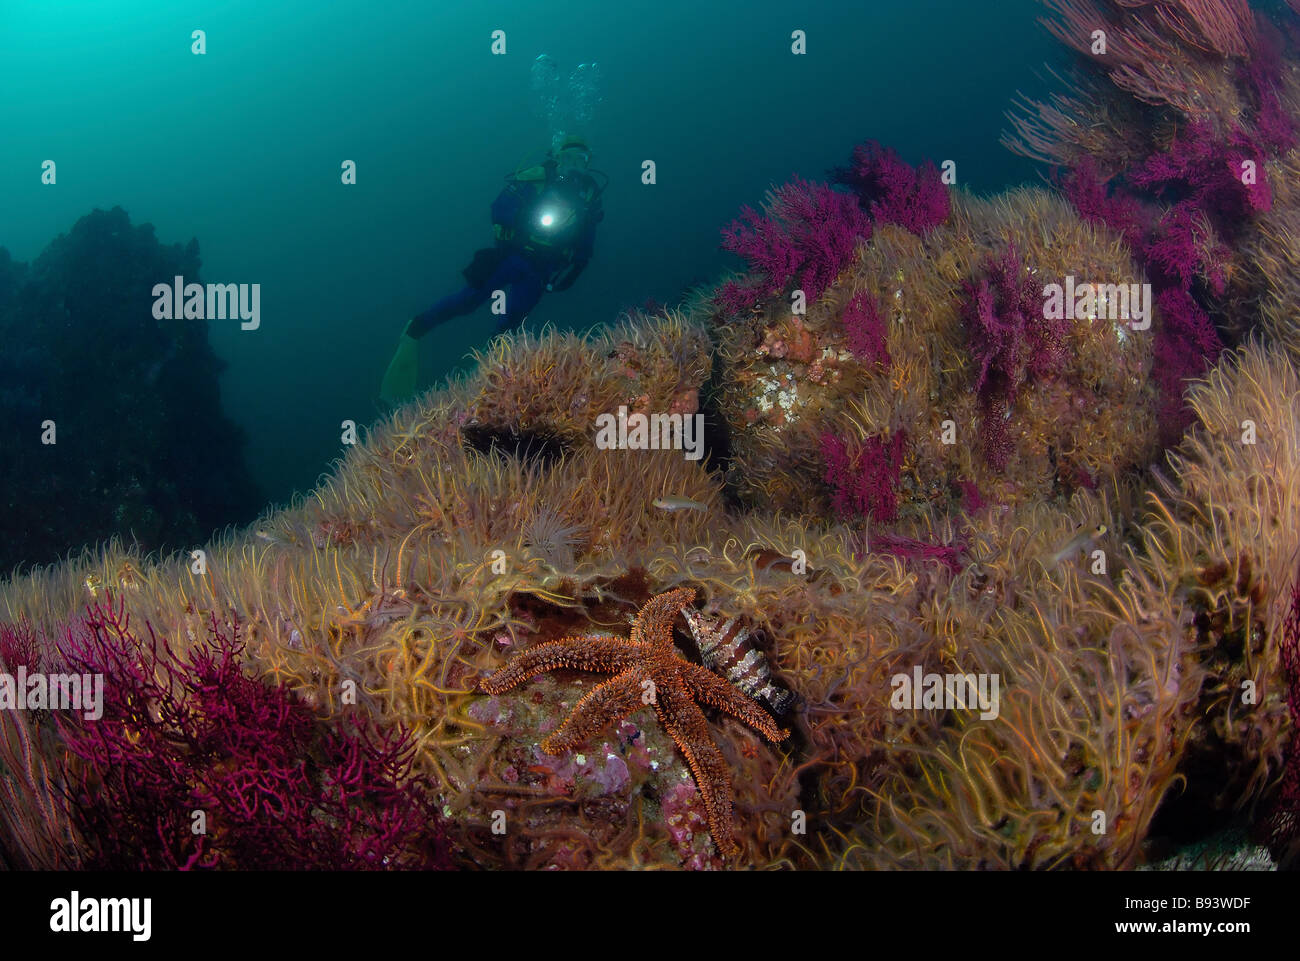 Scuba Diver over Brittle Star Field with Rainbow Starfish and Painted Greenling Anacapa Island Channel Islands Pacific Stock Photo